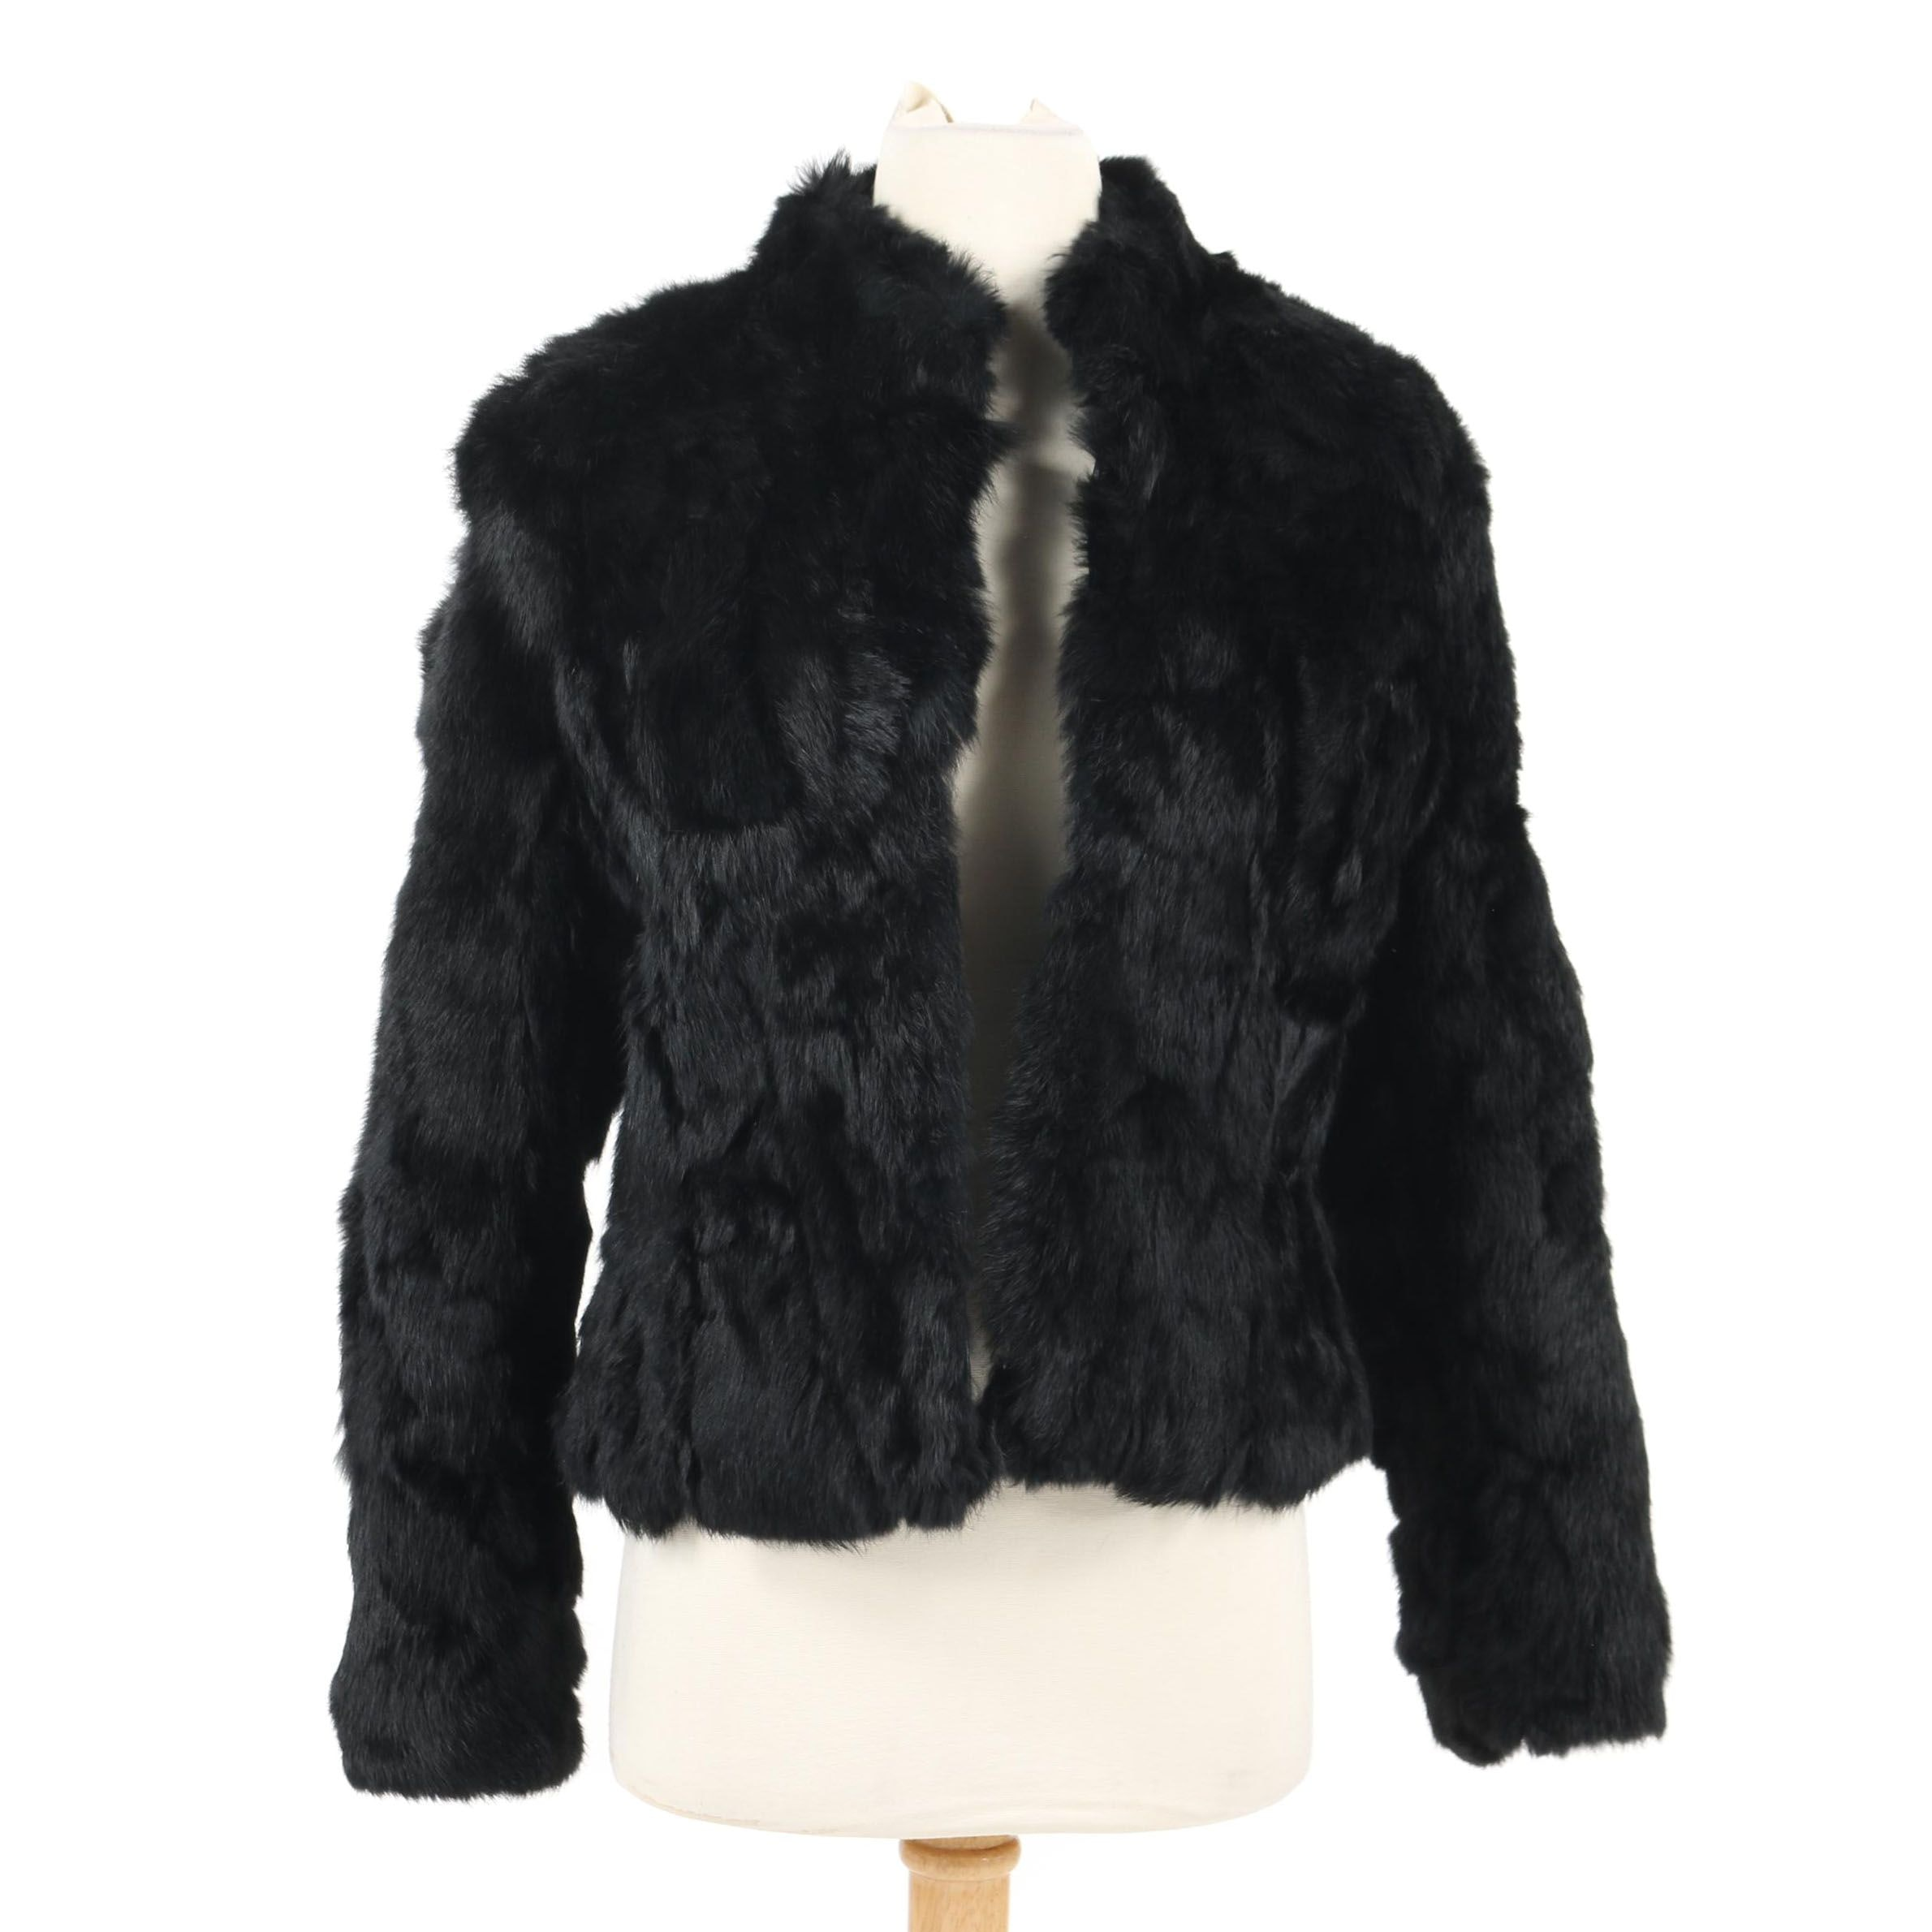 Women's LW Black Rabbit Fur Jacket